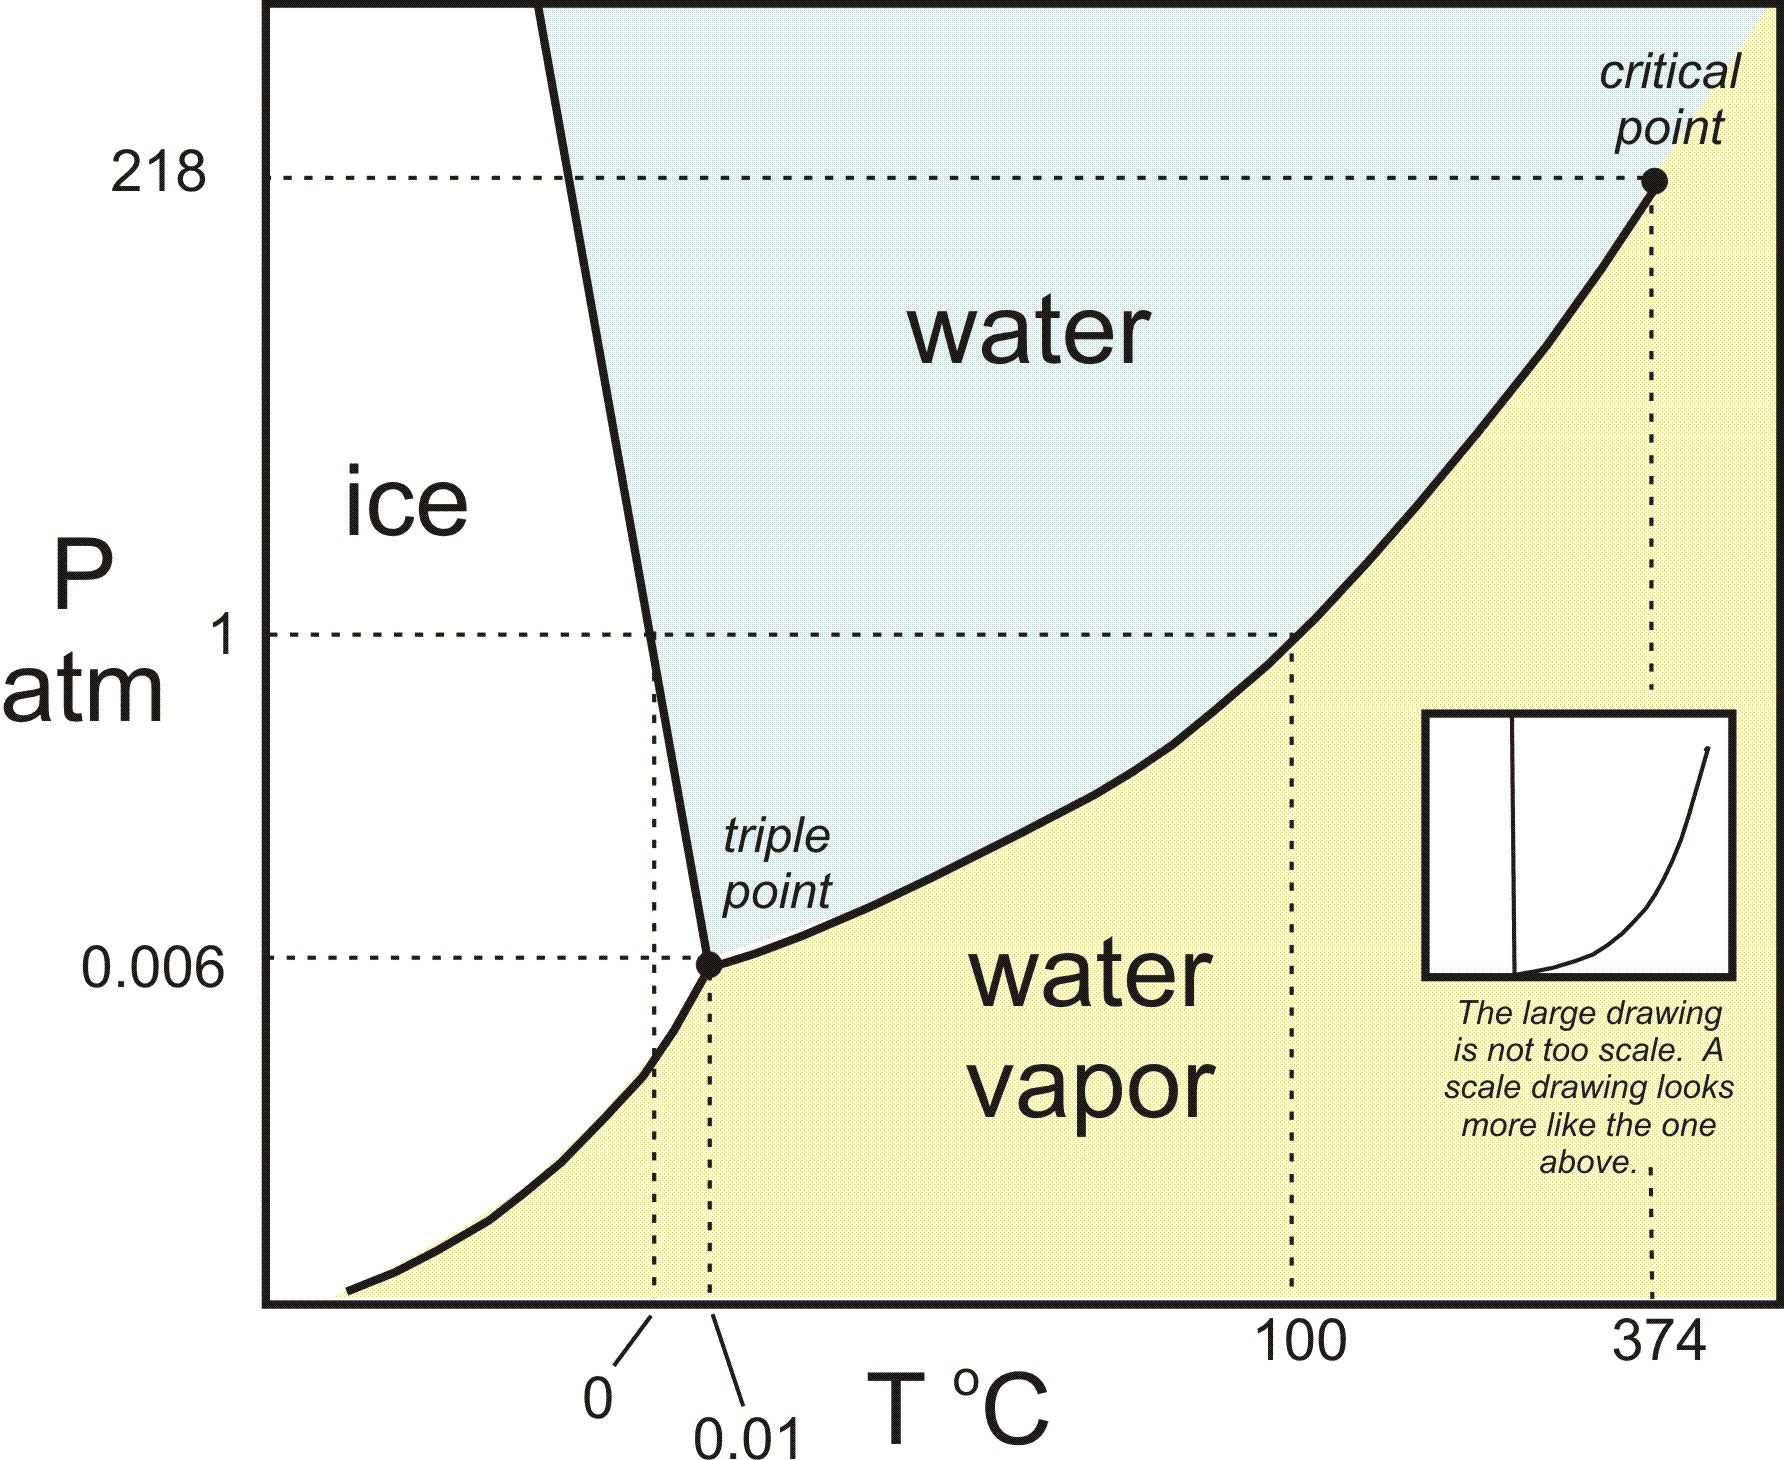 hight resolution of going from some liquid place on the state diagram to p 0 will cross a phase transition line probably just once and probably the liquid to vapor line